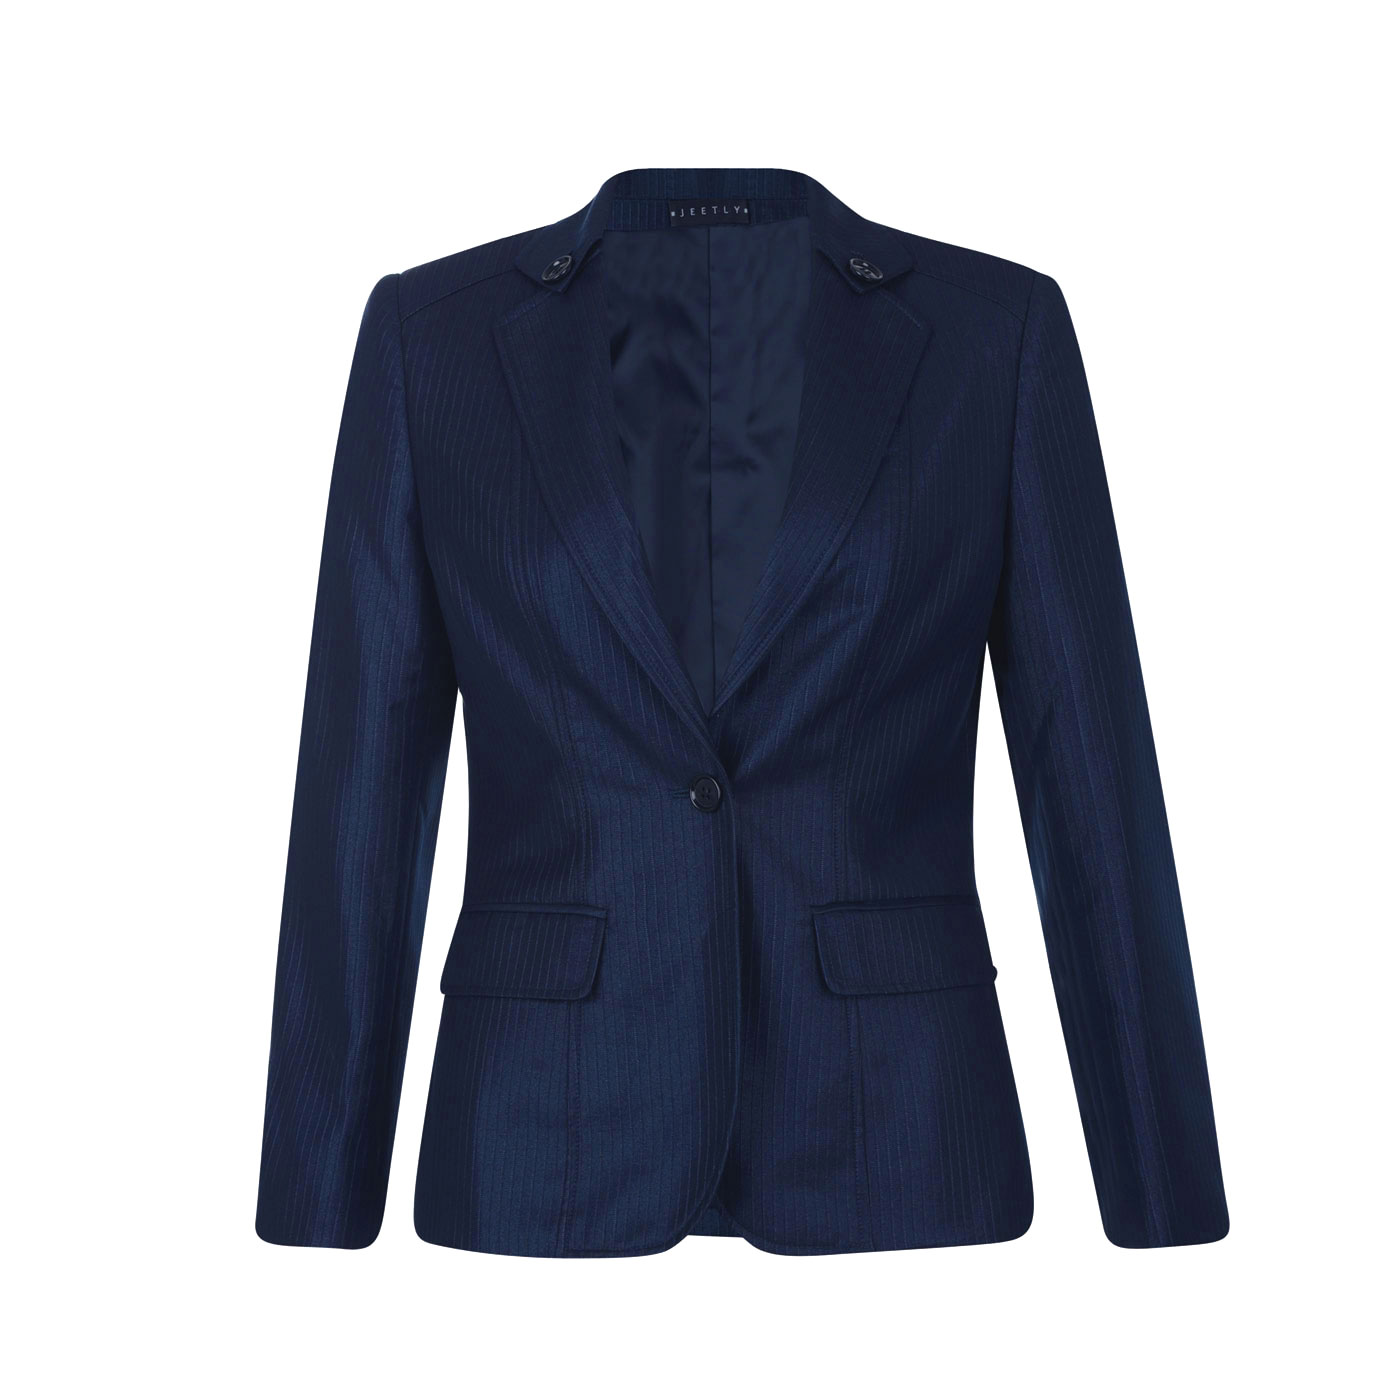 Jeetly - GINA JACKET - Petite Navy Blue suit jacket